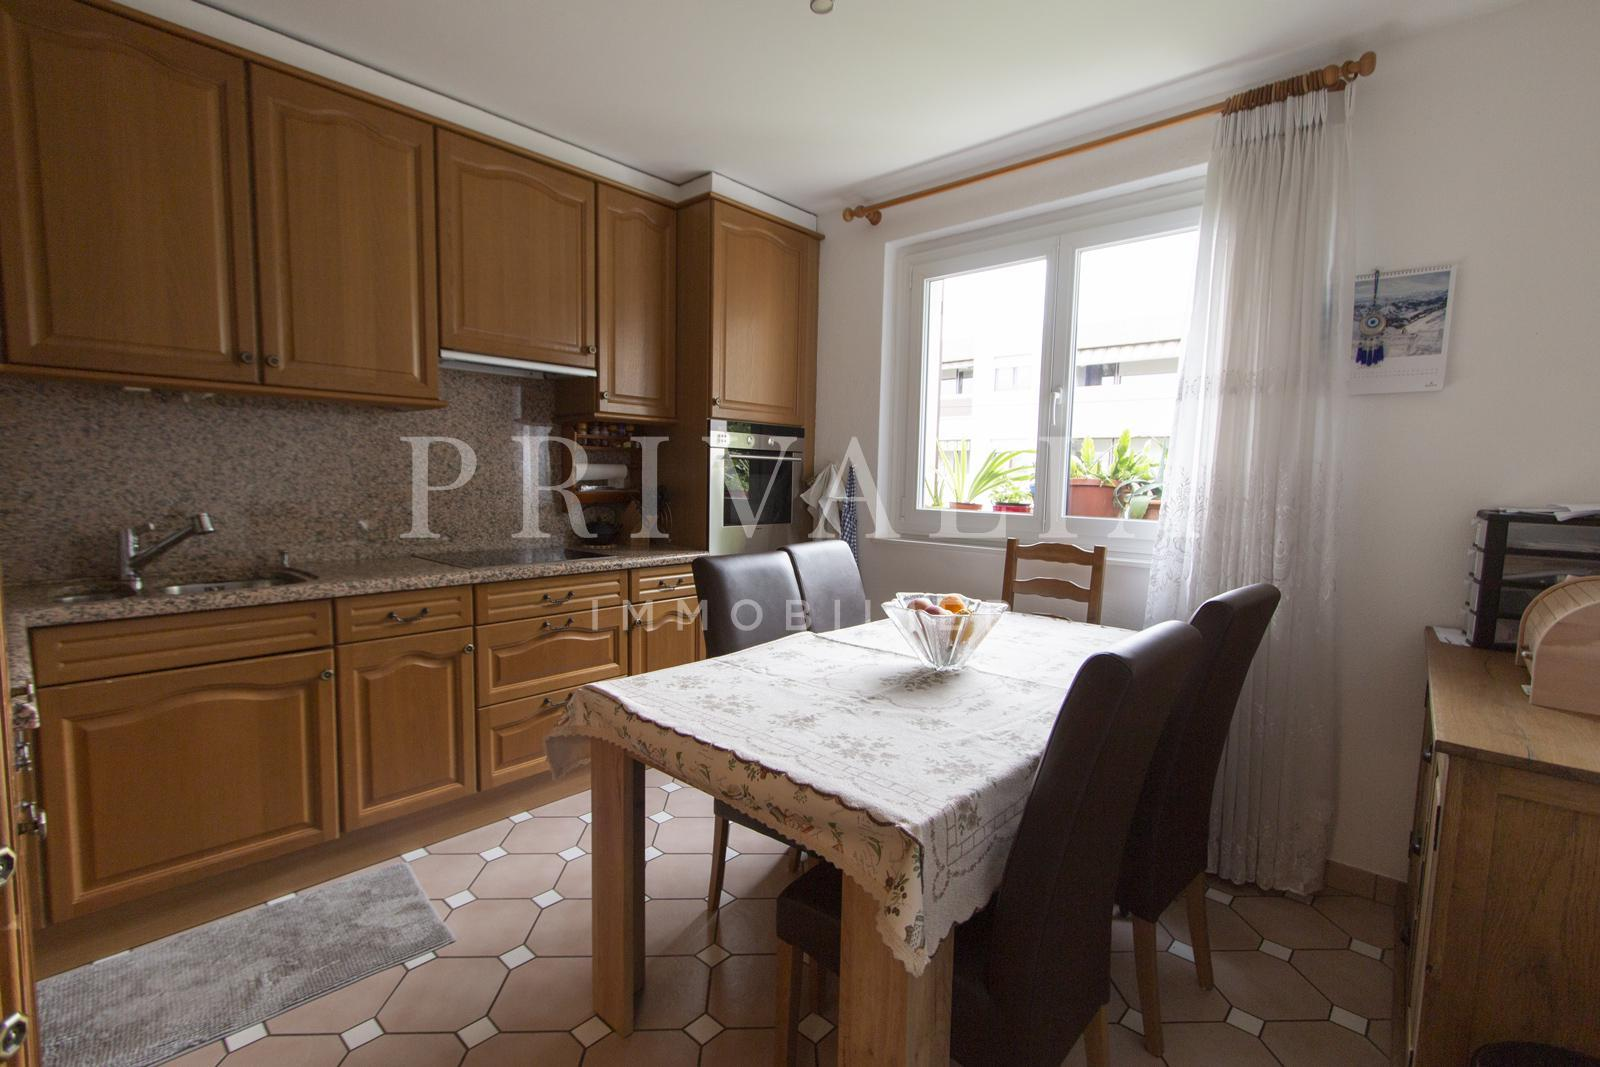 PrivaliaExclusive: 5-room triplex with balcony and 4 parking spaces